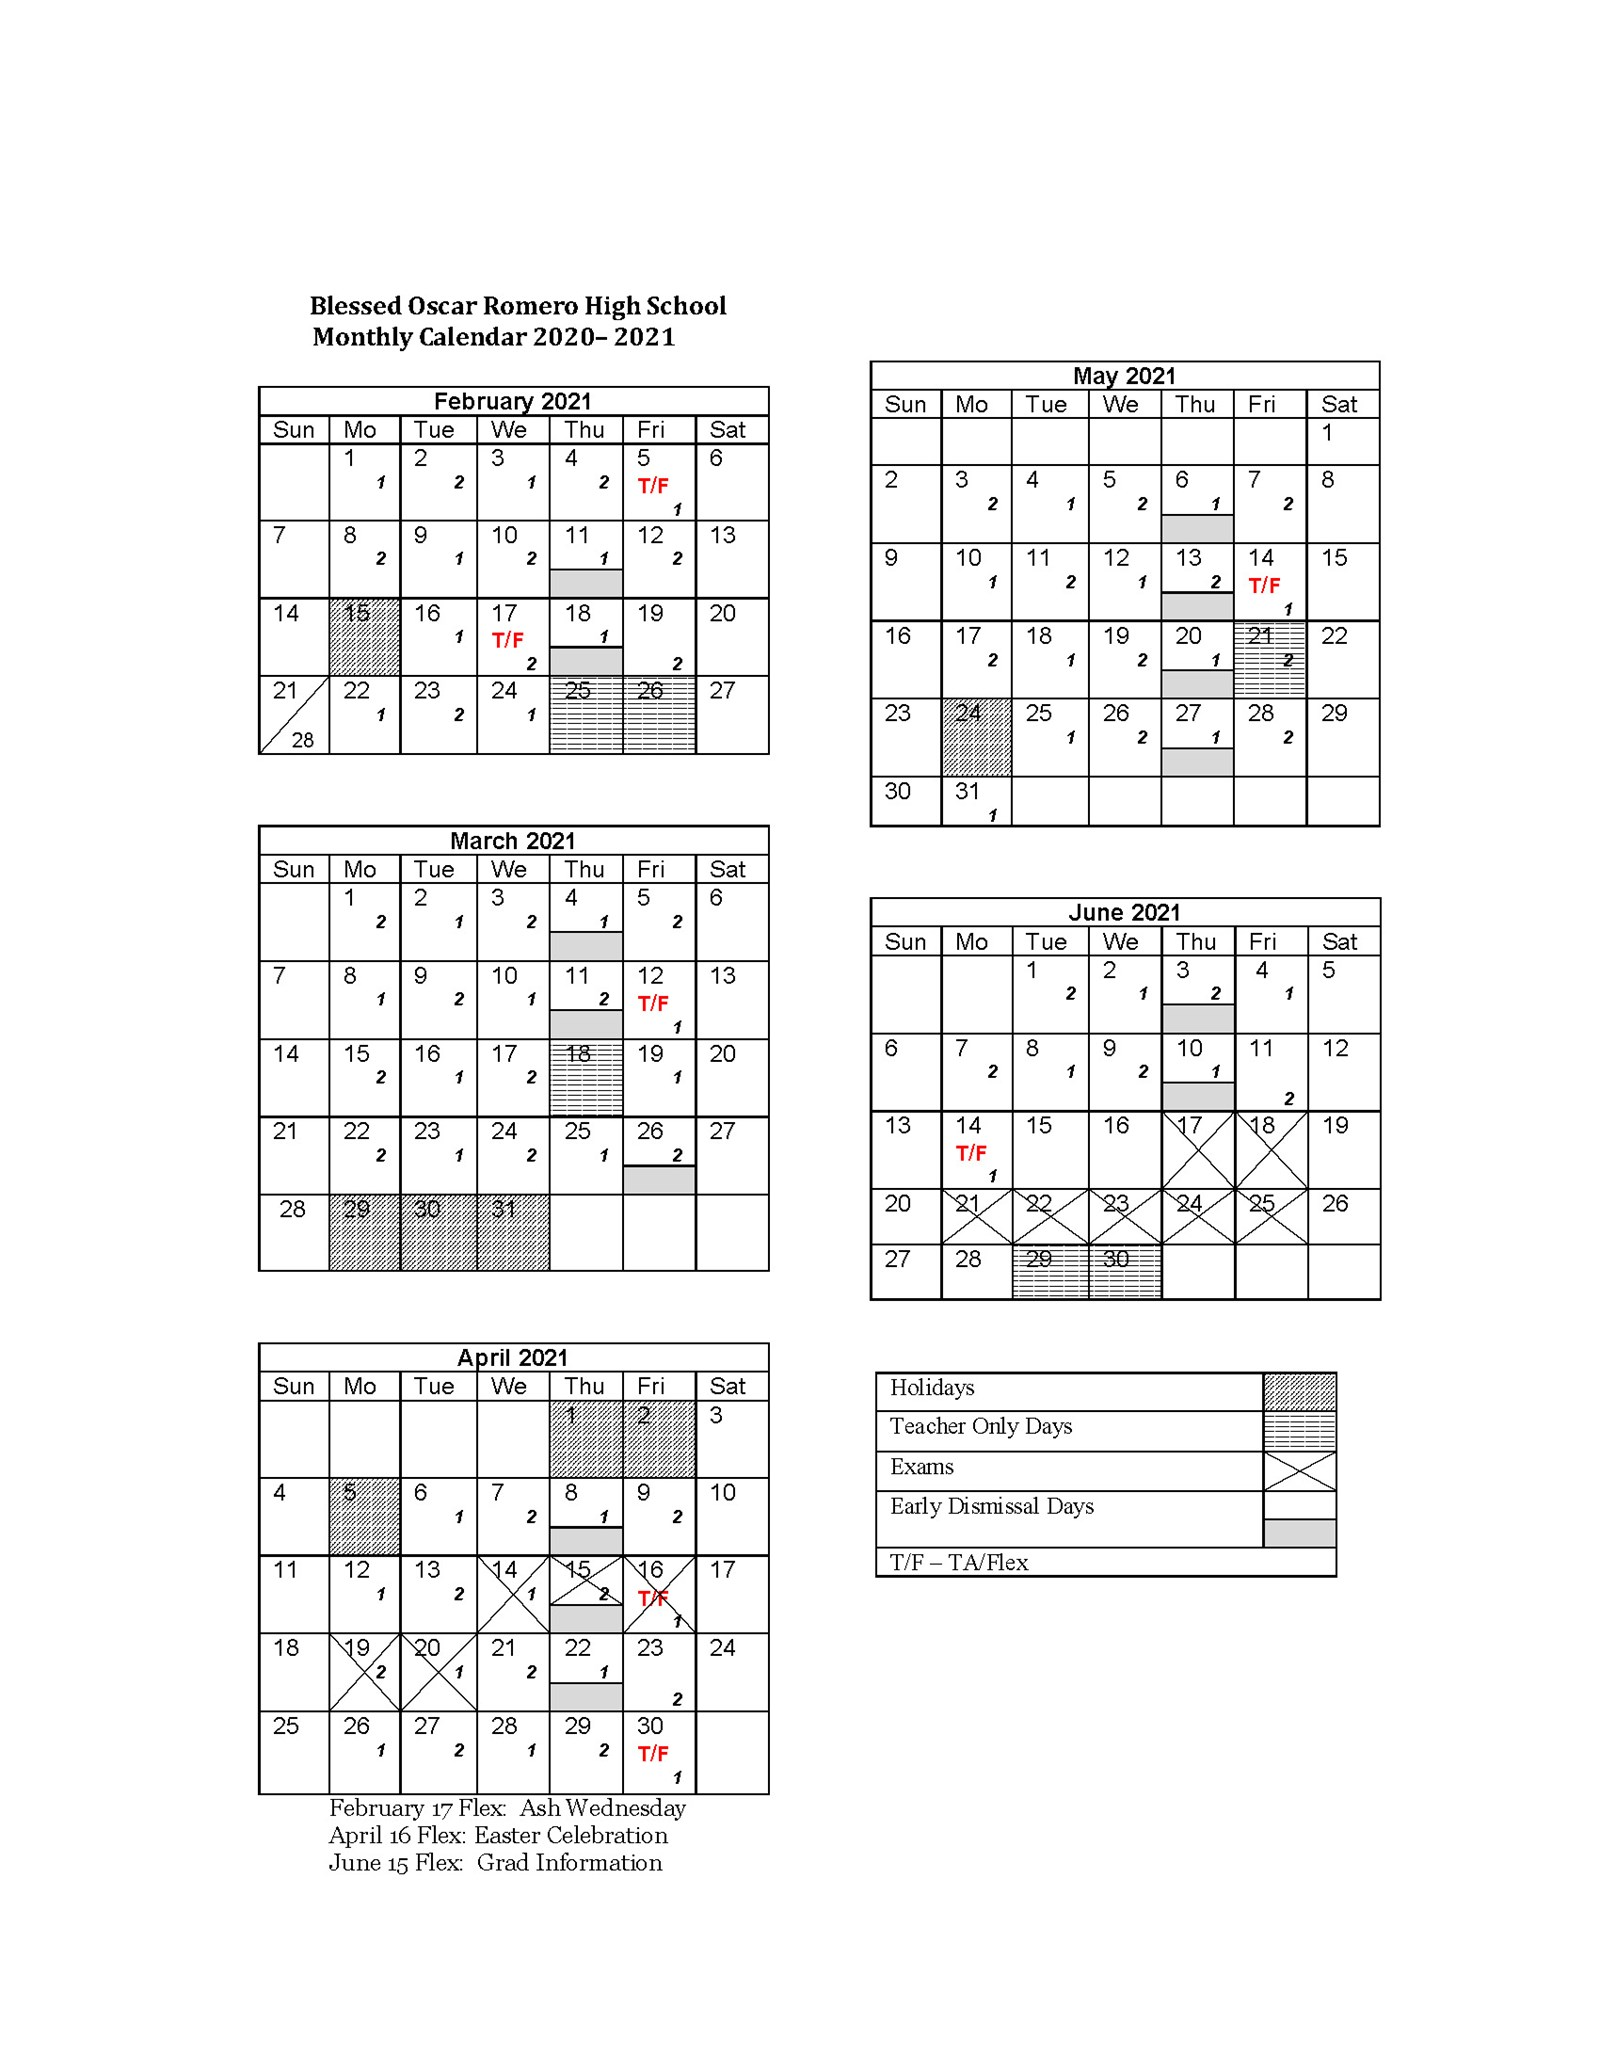 Monthly Day Calendar 20-21 (002) (1)_Page_2.jpg